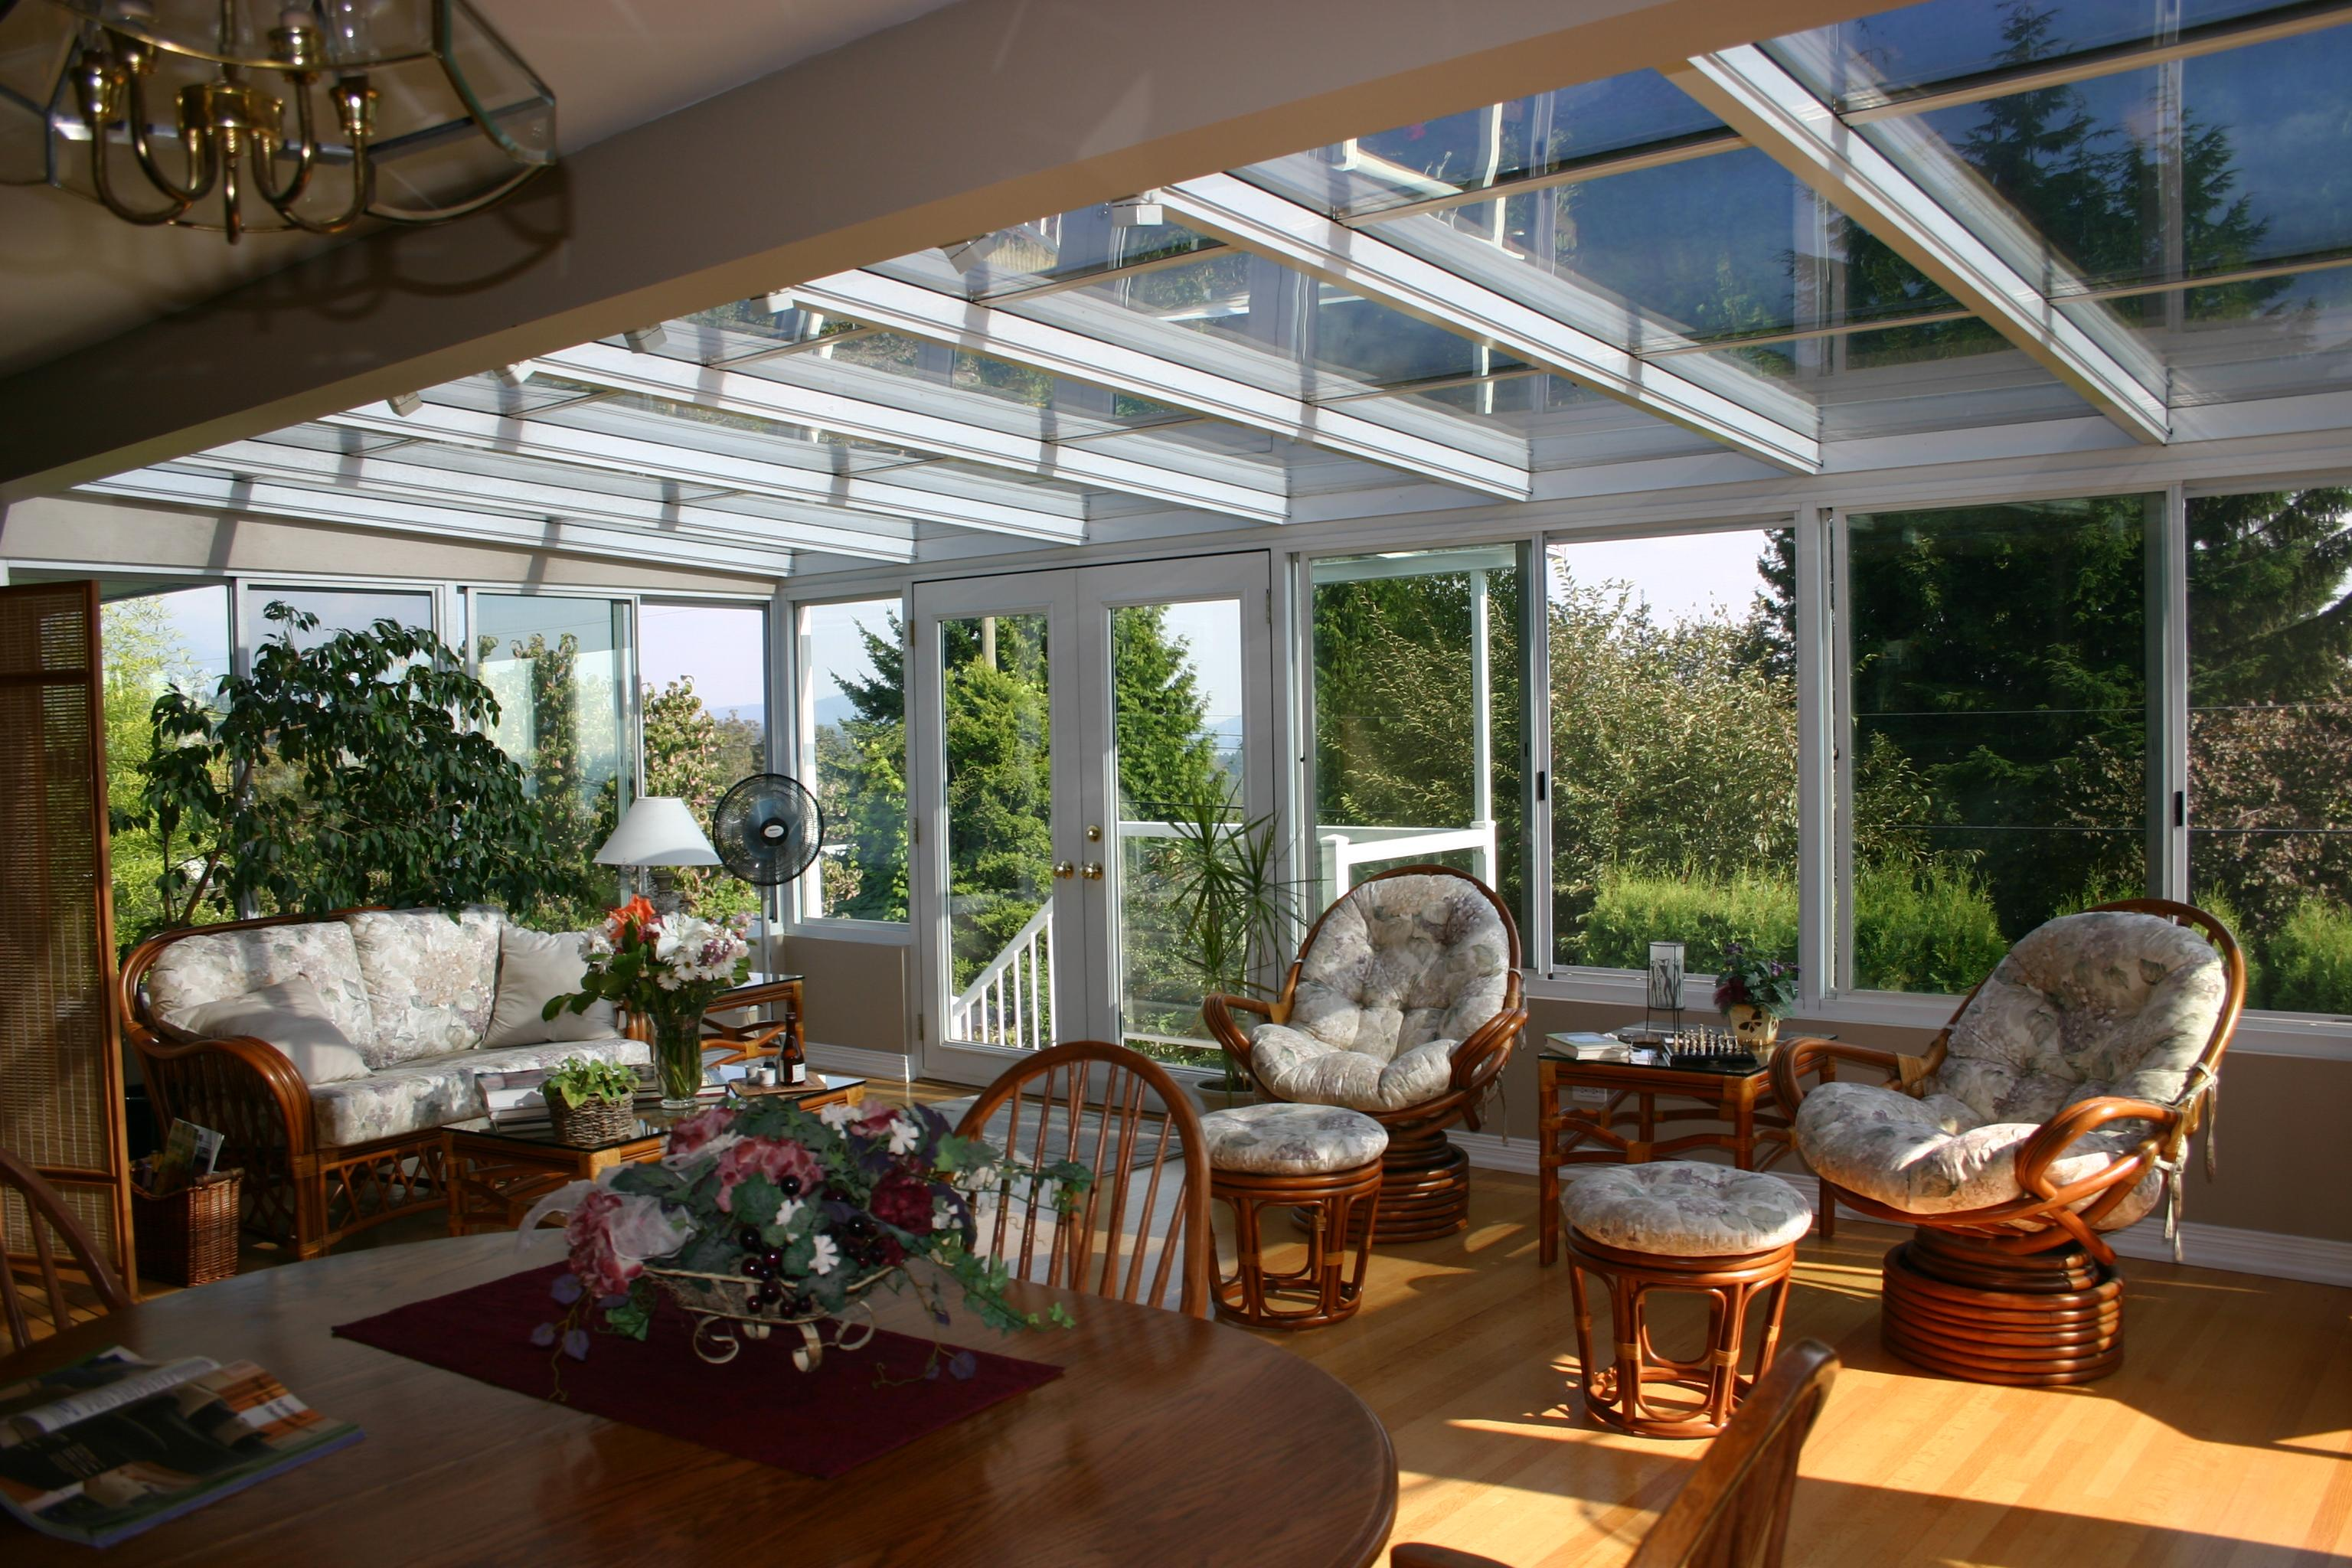 Four seasons sunrooms port coquitlam bc ourbis for 4 season sunrooms